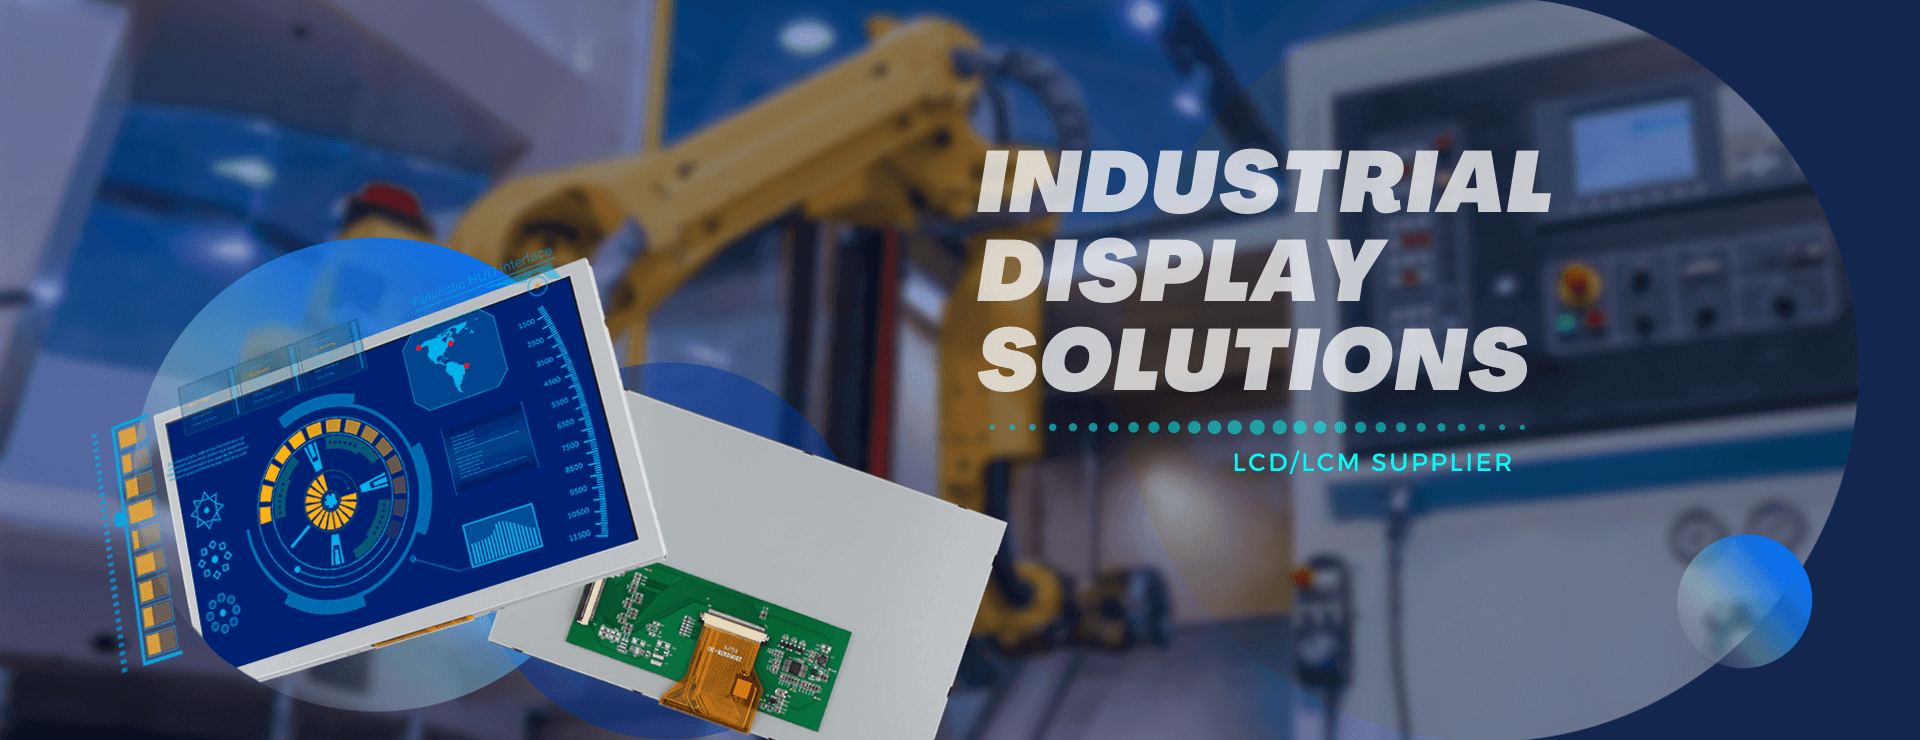 EVERVISION Industrial Display Solution